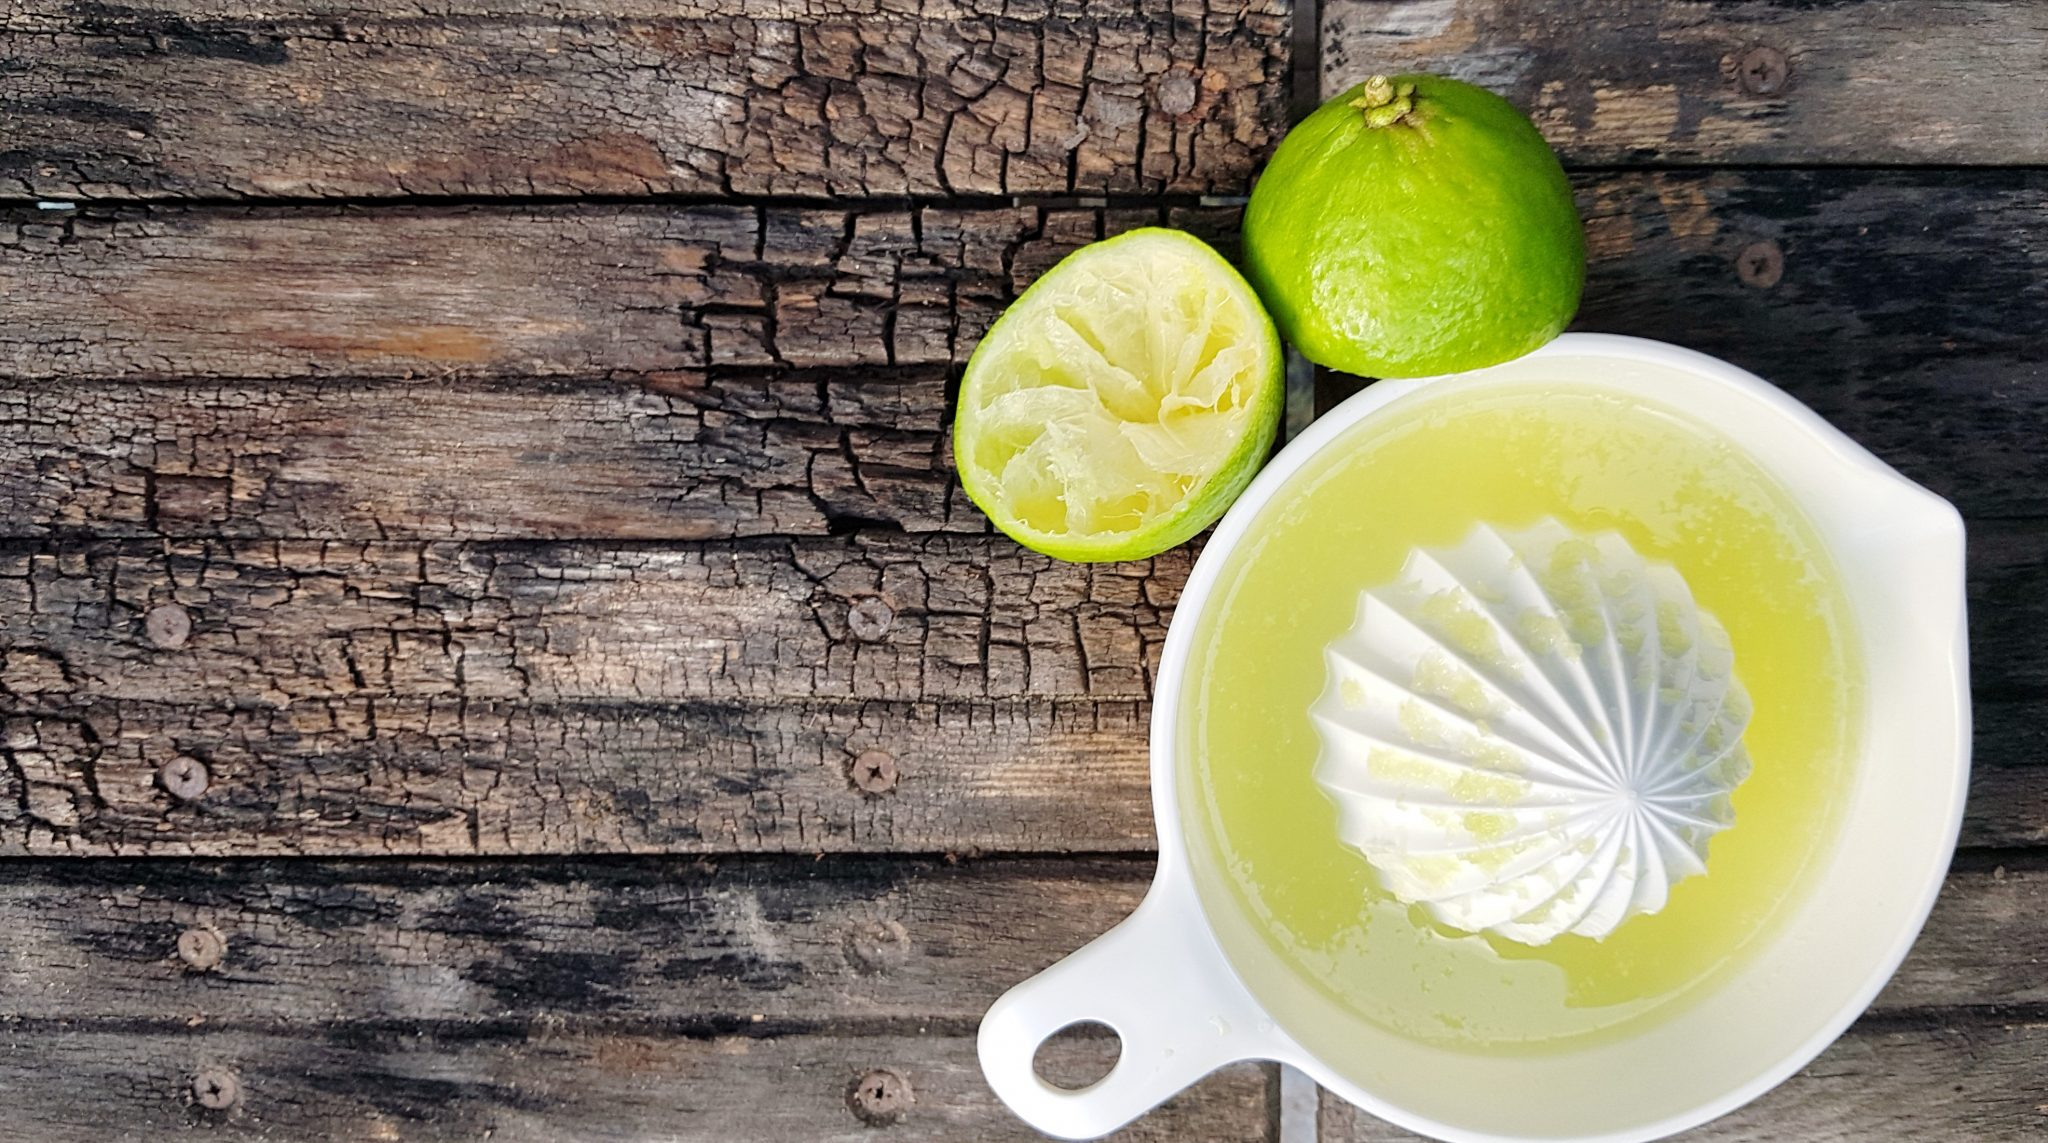 How Long Does Lime Juice Last? Can It Go Bad?